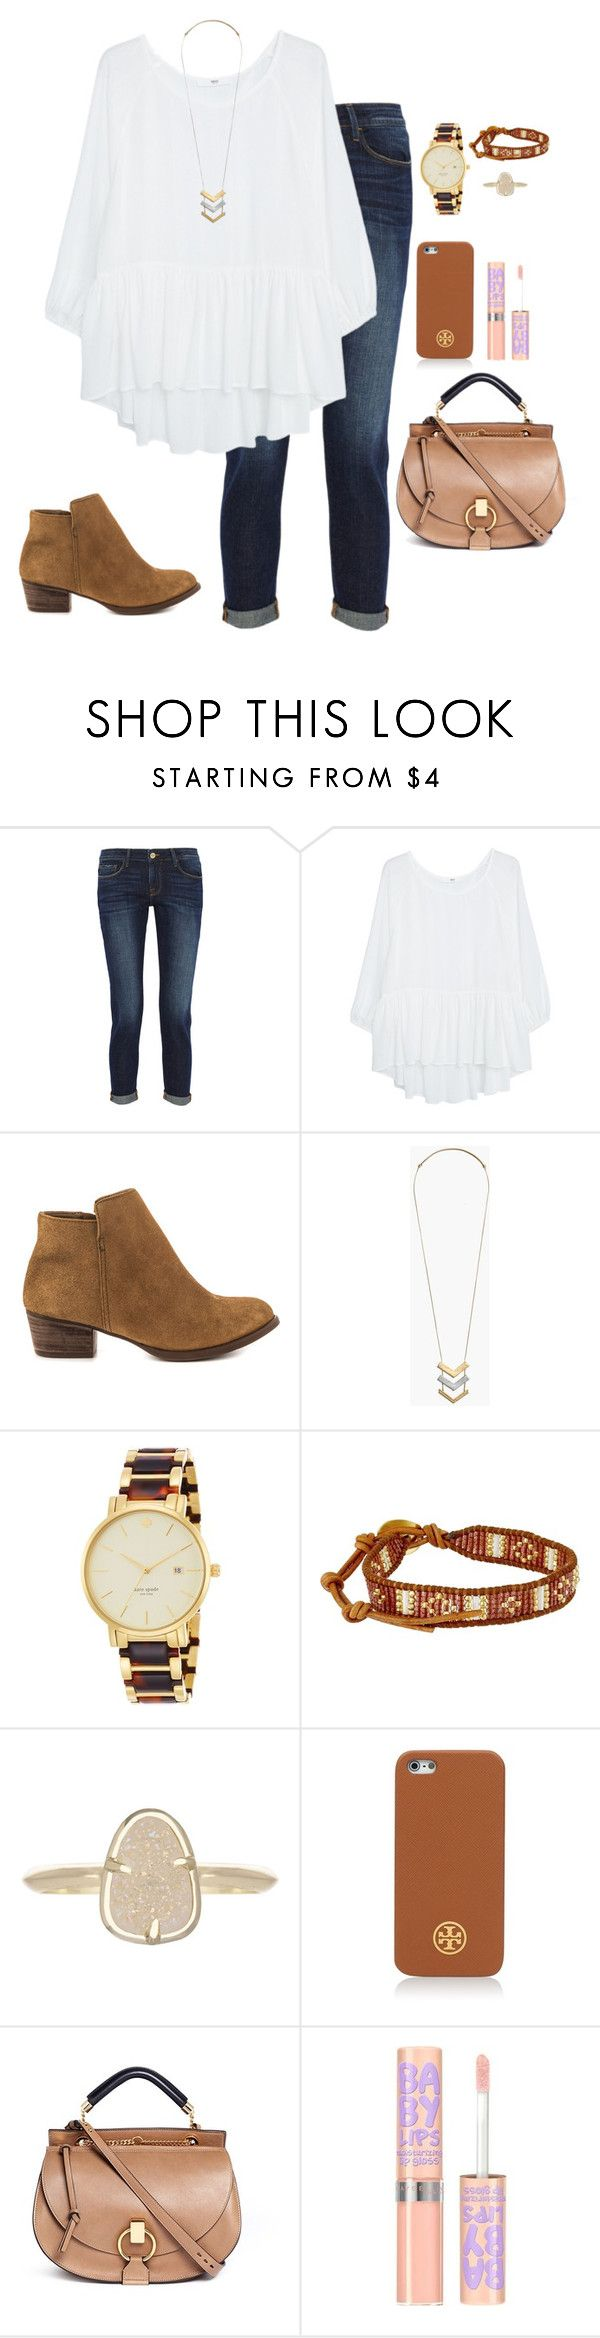 """"""\shopping\"""" by apemb ❤ liked on Polyvore featuring Frame Denim, MANGO, Jessica Simpson, Madewell, Kate Spade, Chan Luu, Kendra Scott, Tory Burch, Chloé and Maybelline""600|2338|?|en|2|426d4aaed8b7ded89321983f04944d50|False|UNLIKELY|0.3575212061405182